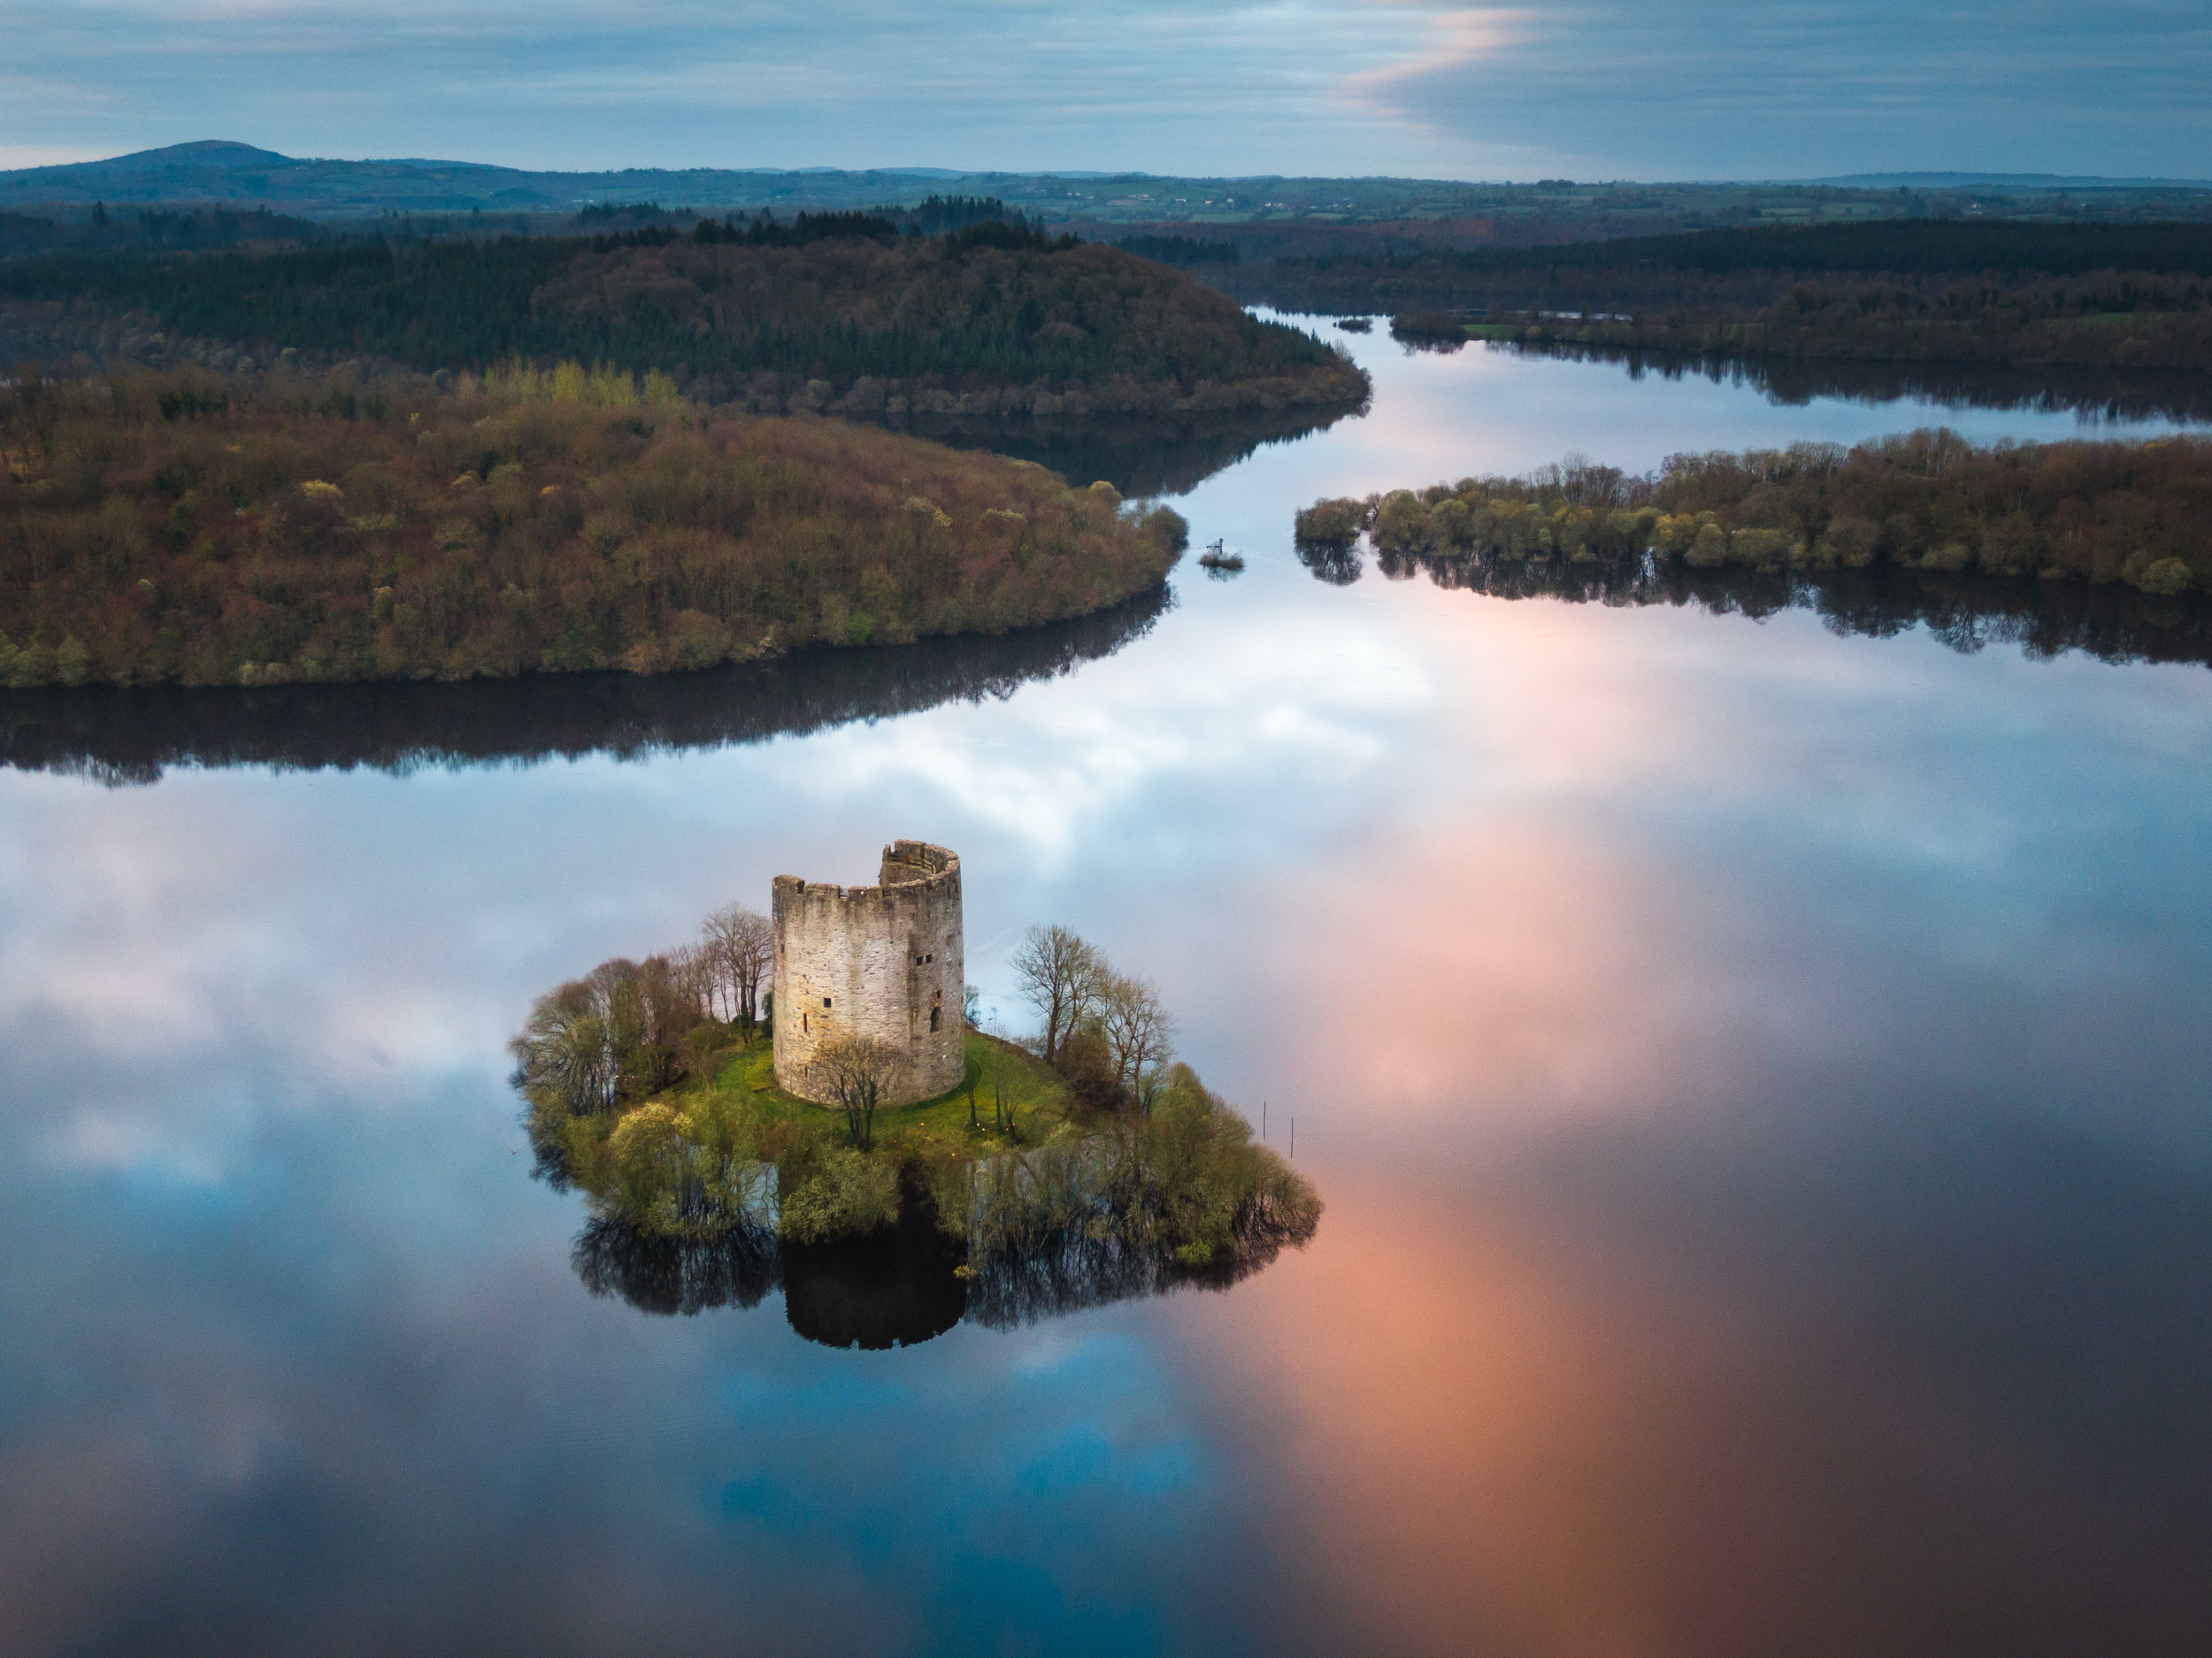 CLOUGH OUGHTER CASTLE - Visit the iconic Clough Oughter Castle Island